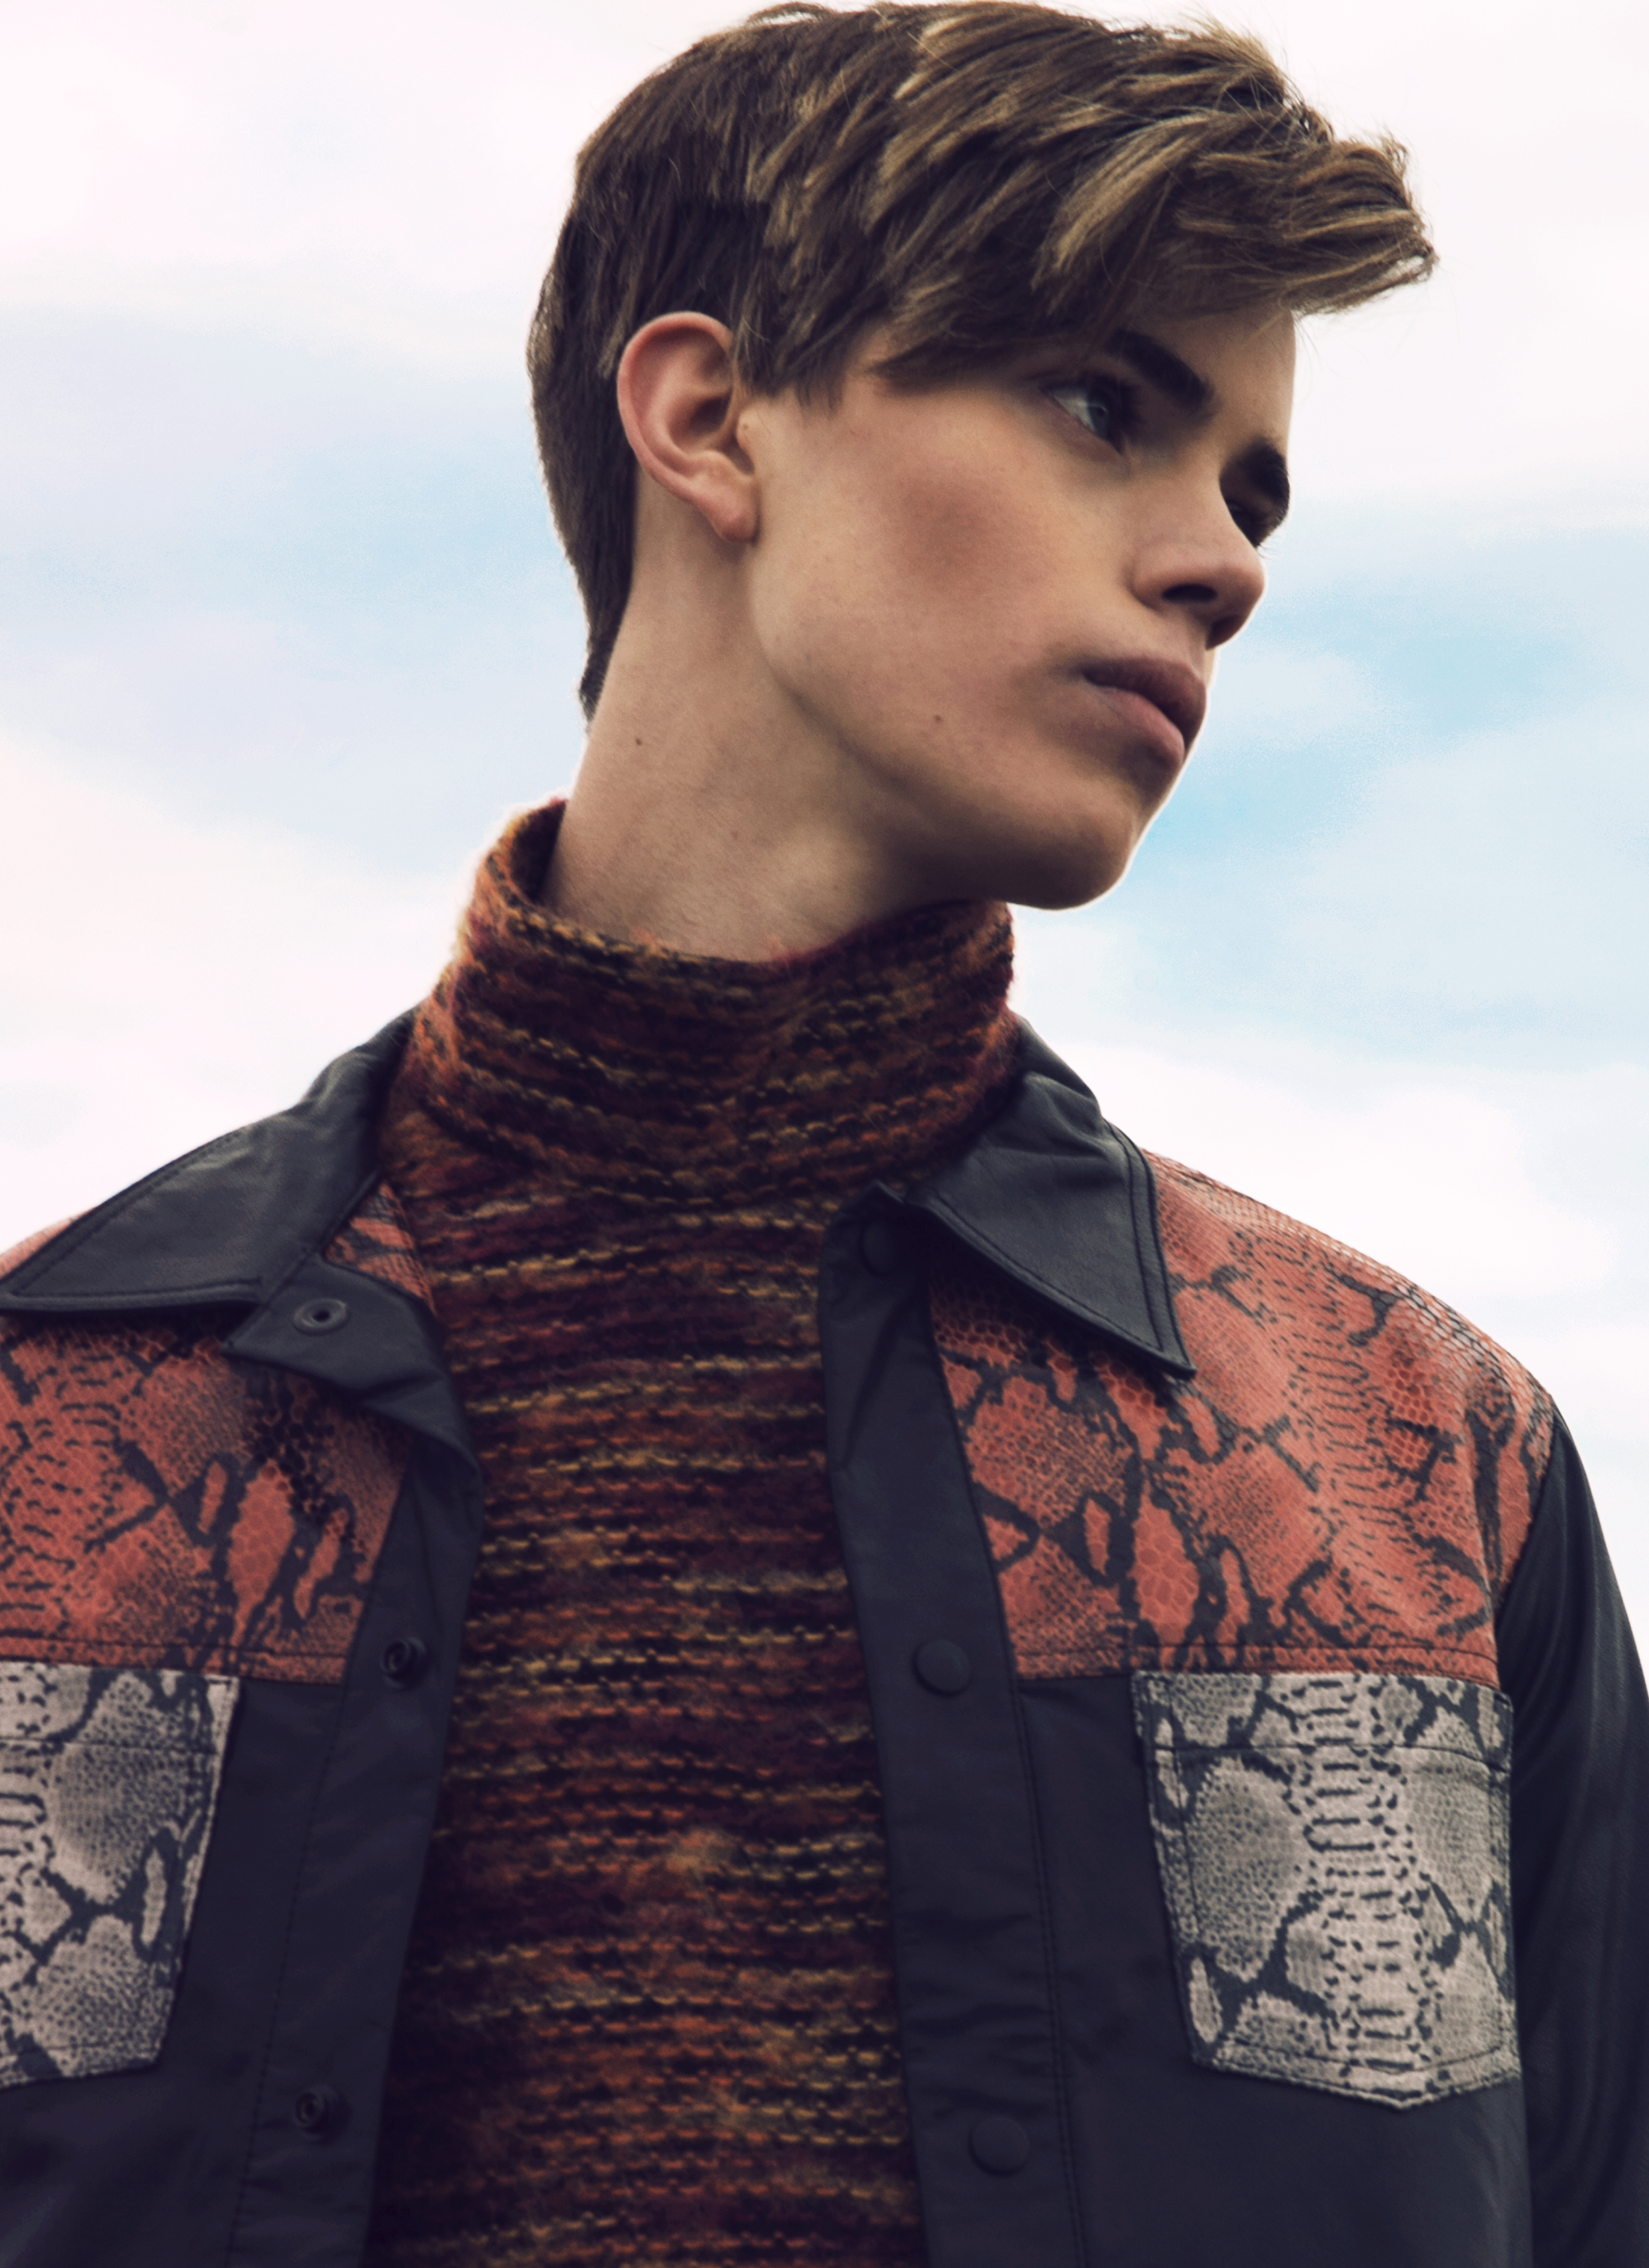 Turtleneck and leather jacket ANDREW COIMBRA